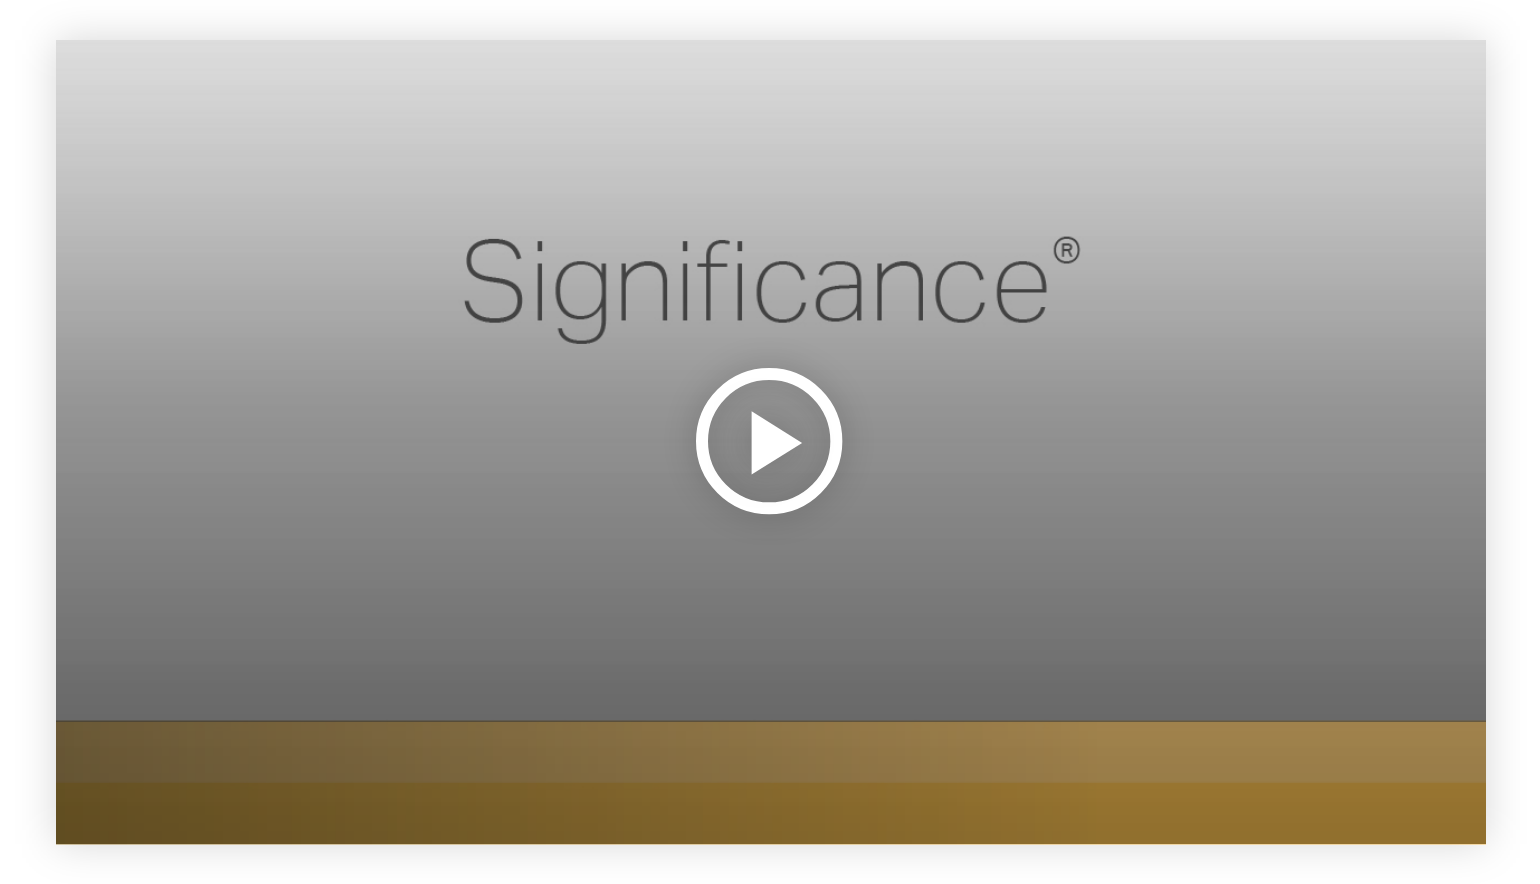 Play video: Significance - Learn more about your innate talents from Gallup's Clifton StrengthsFinder!